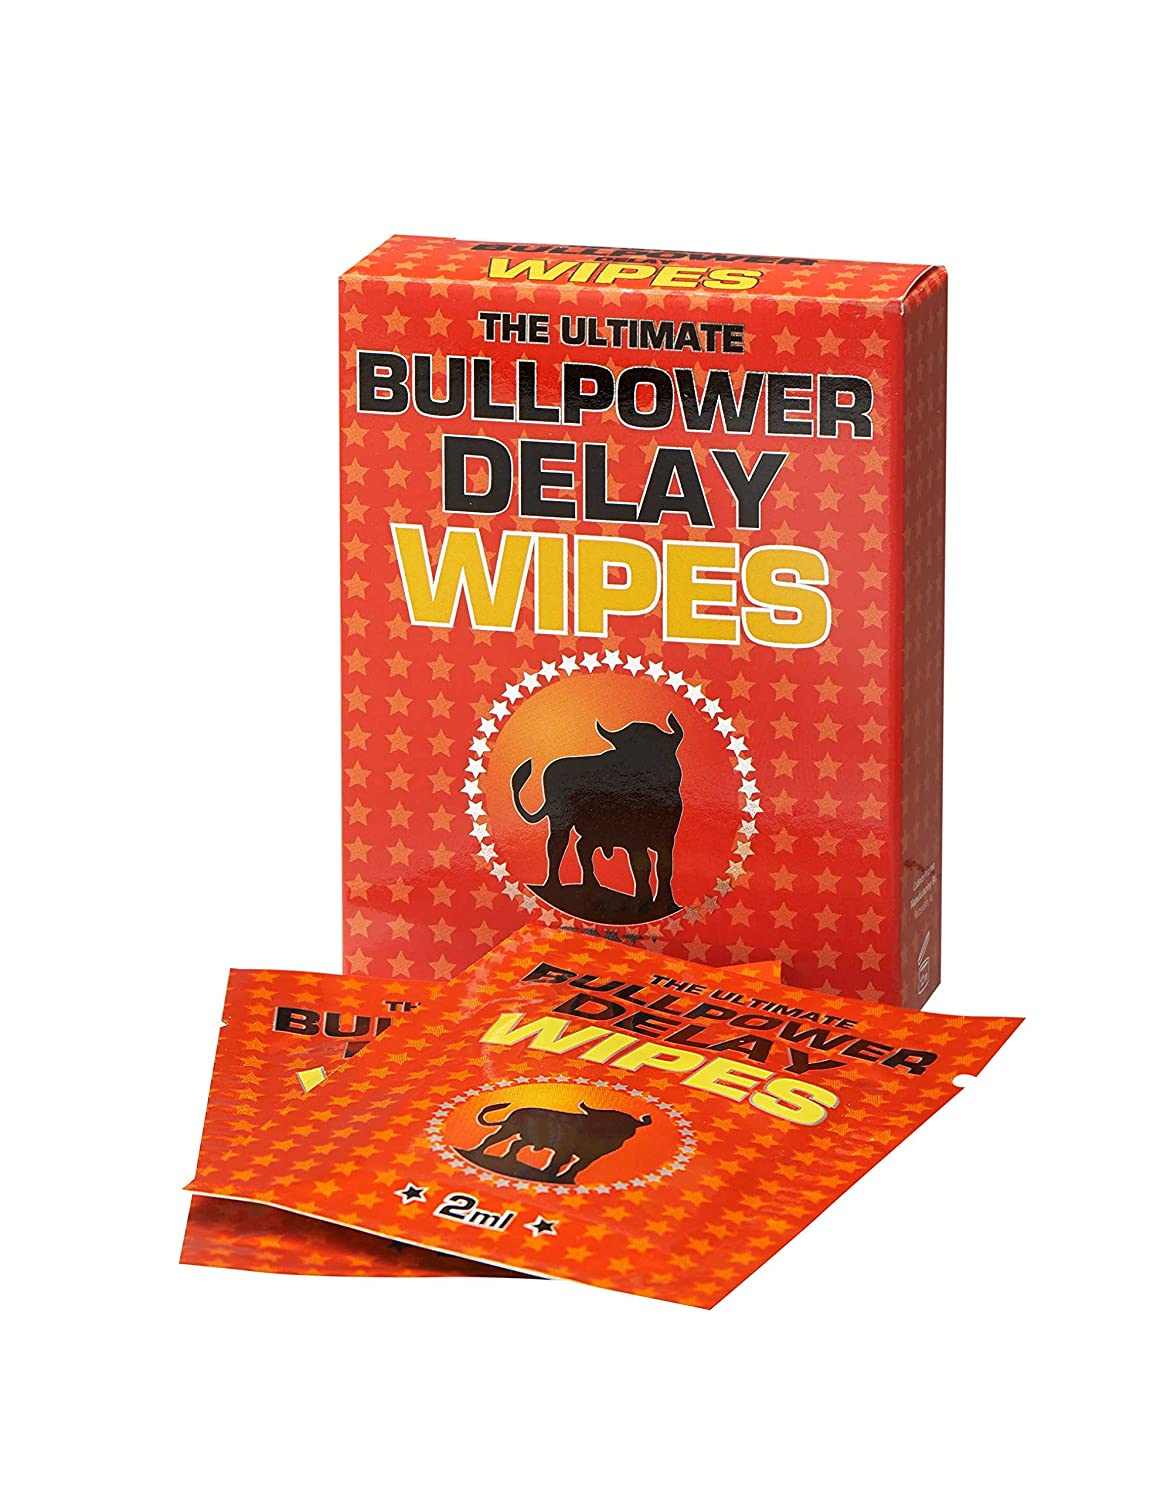 Amazon.com: BULL POWER SOBRES DE TOALLITAS RETARDANTES - ST: Health & Personal Care